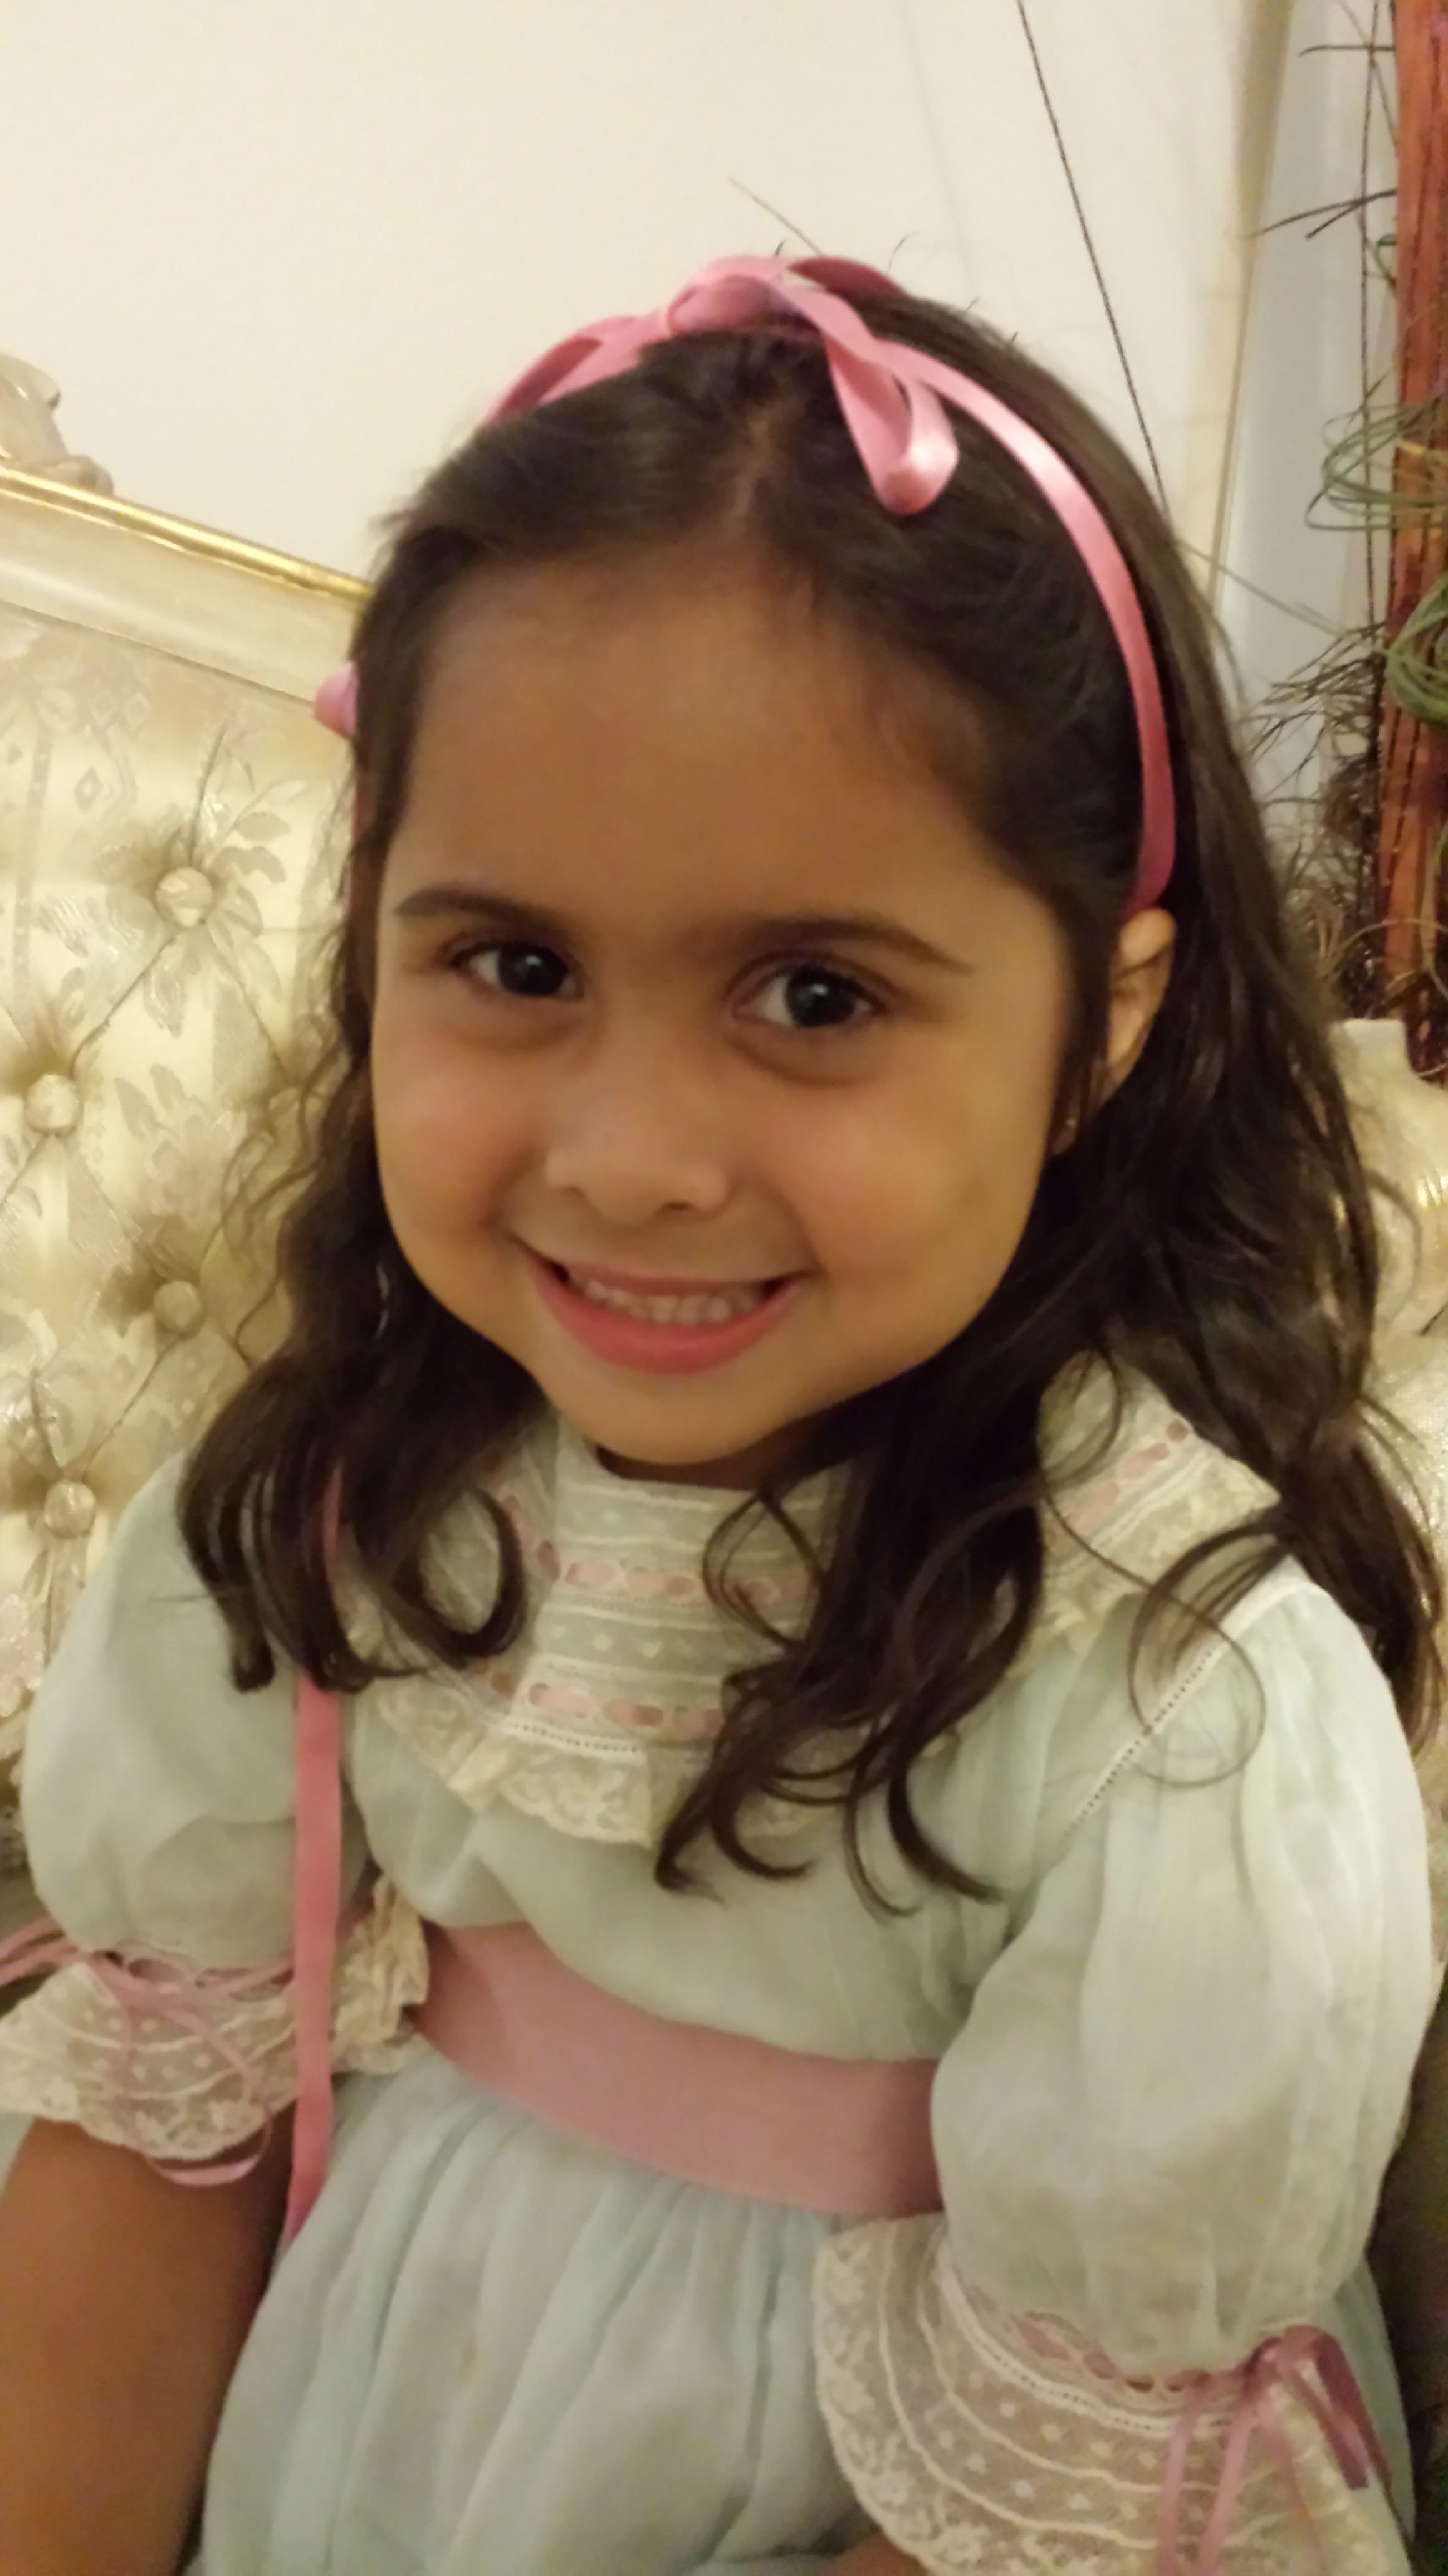 Aliya, newly turned 4 years old